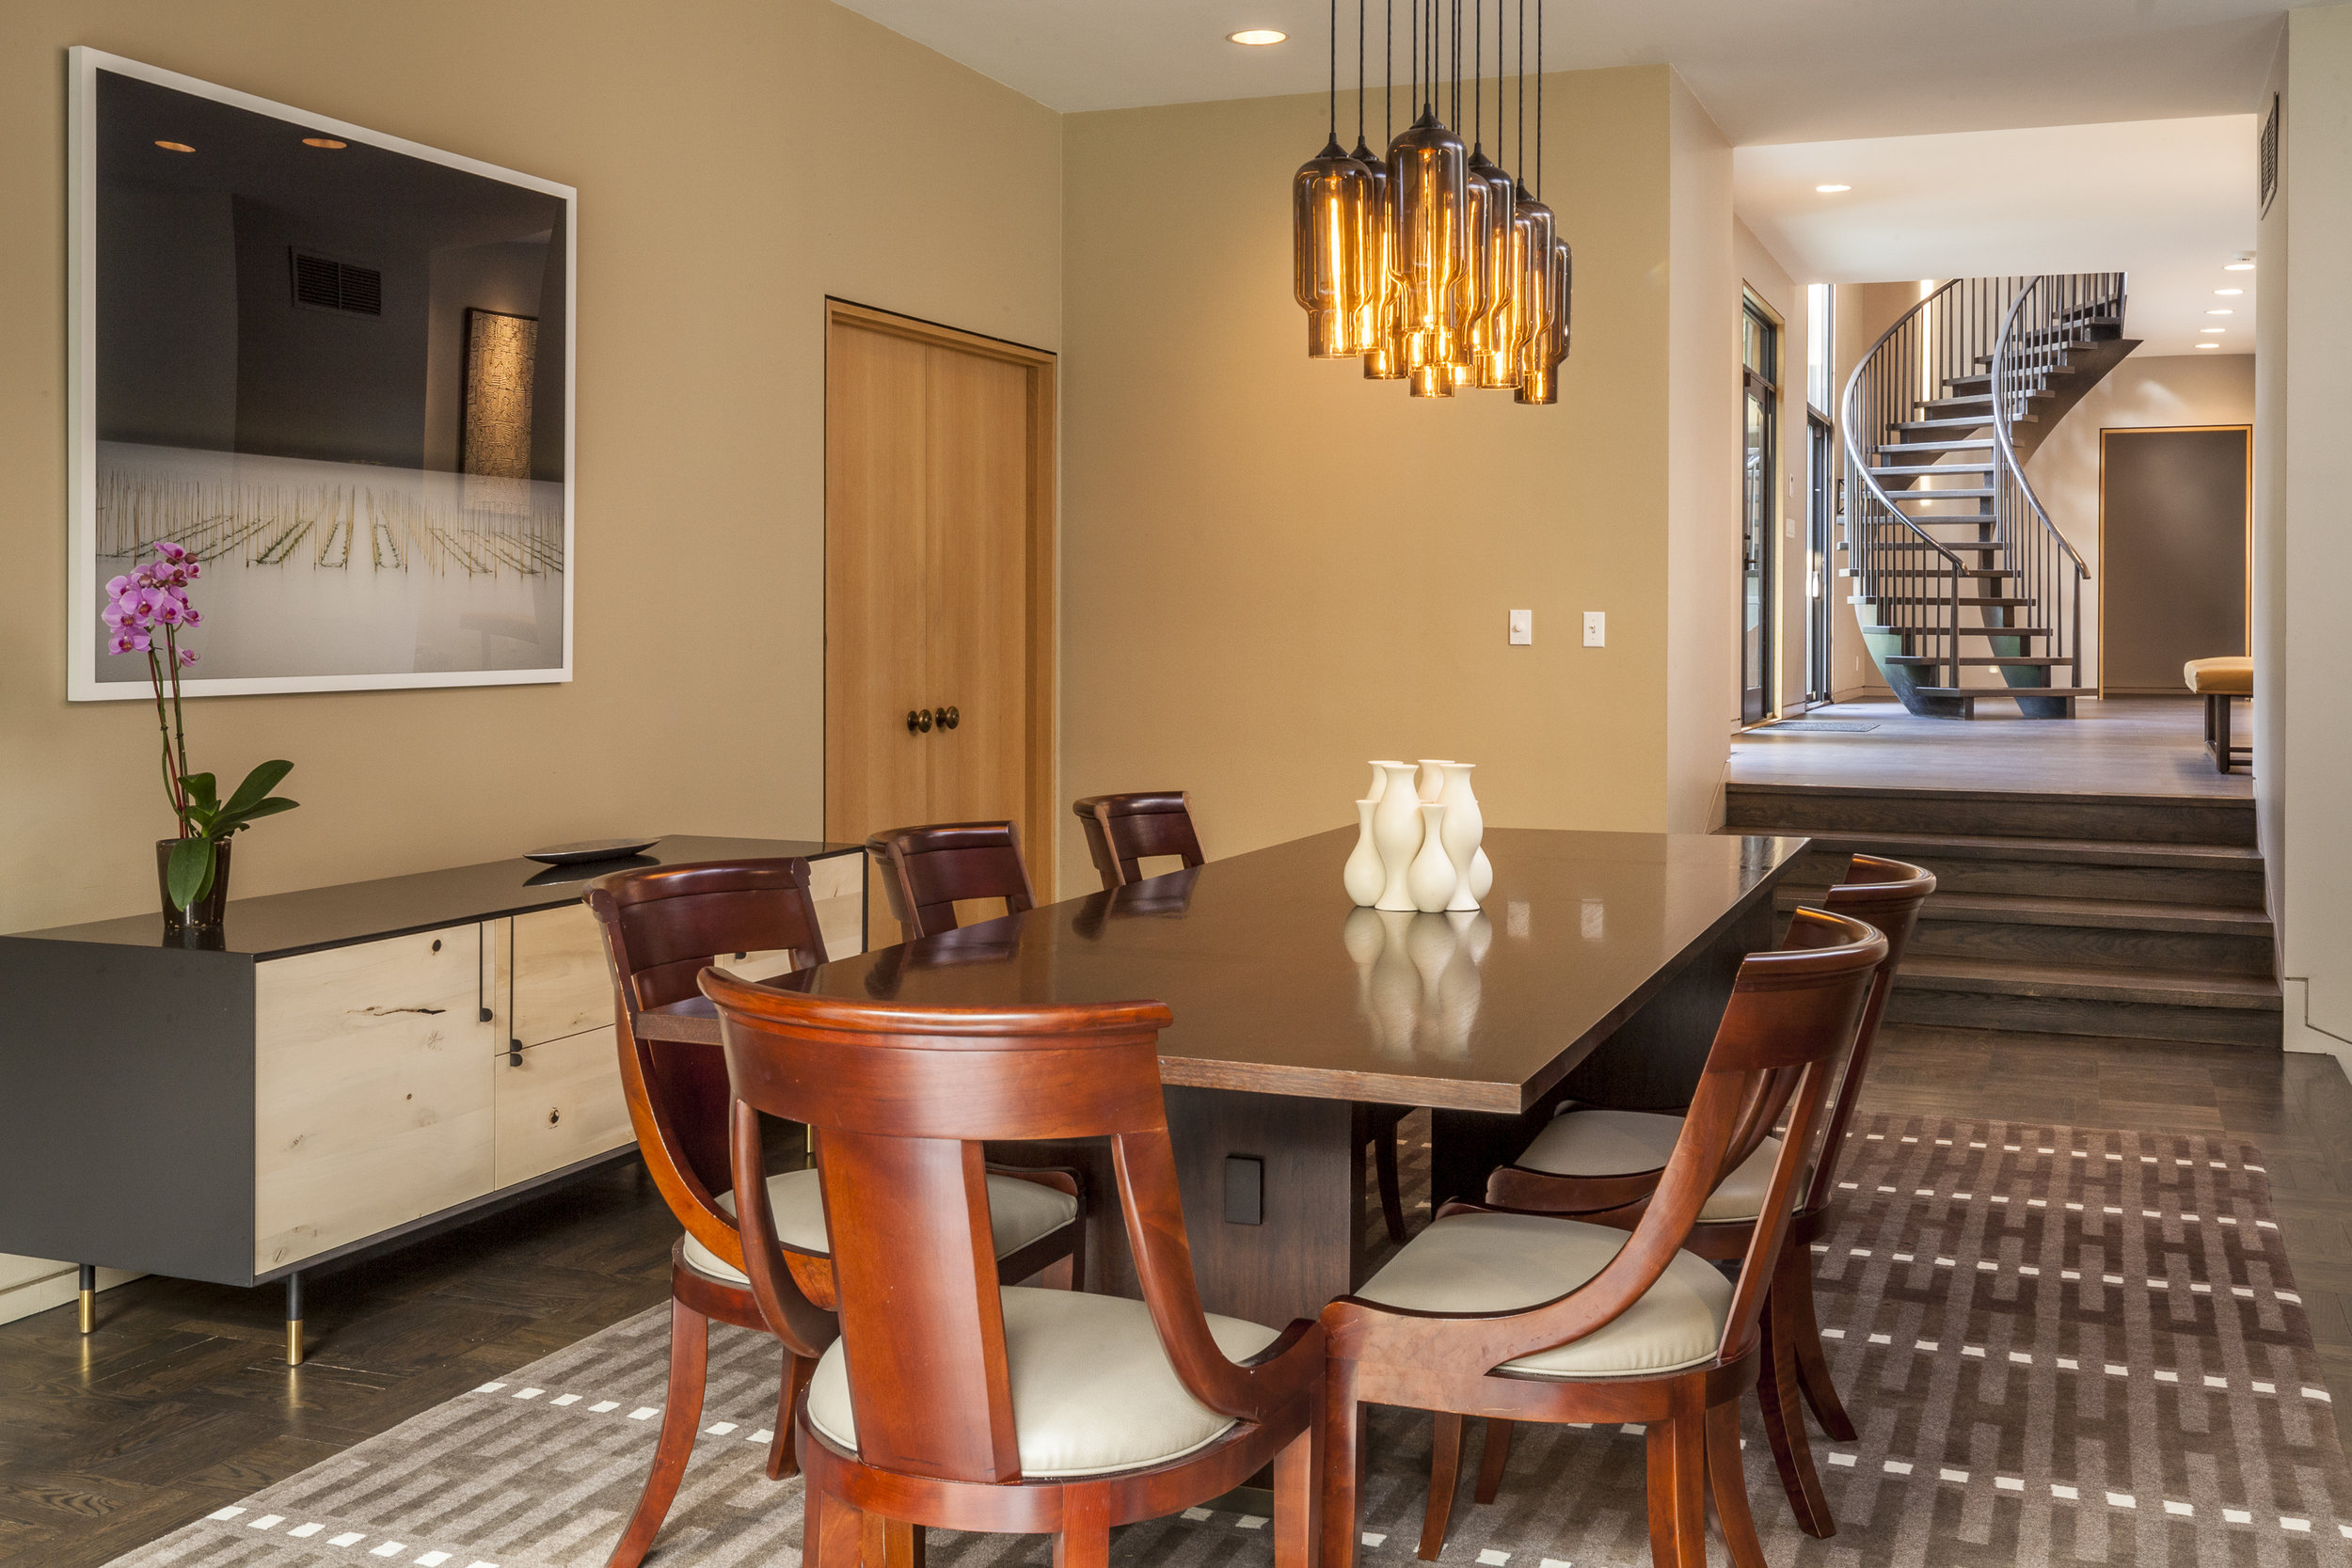 Modern dining area with large table for six with staircase in background